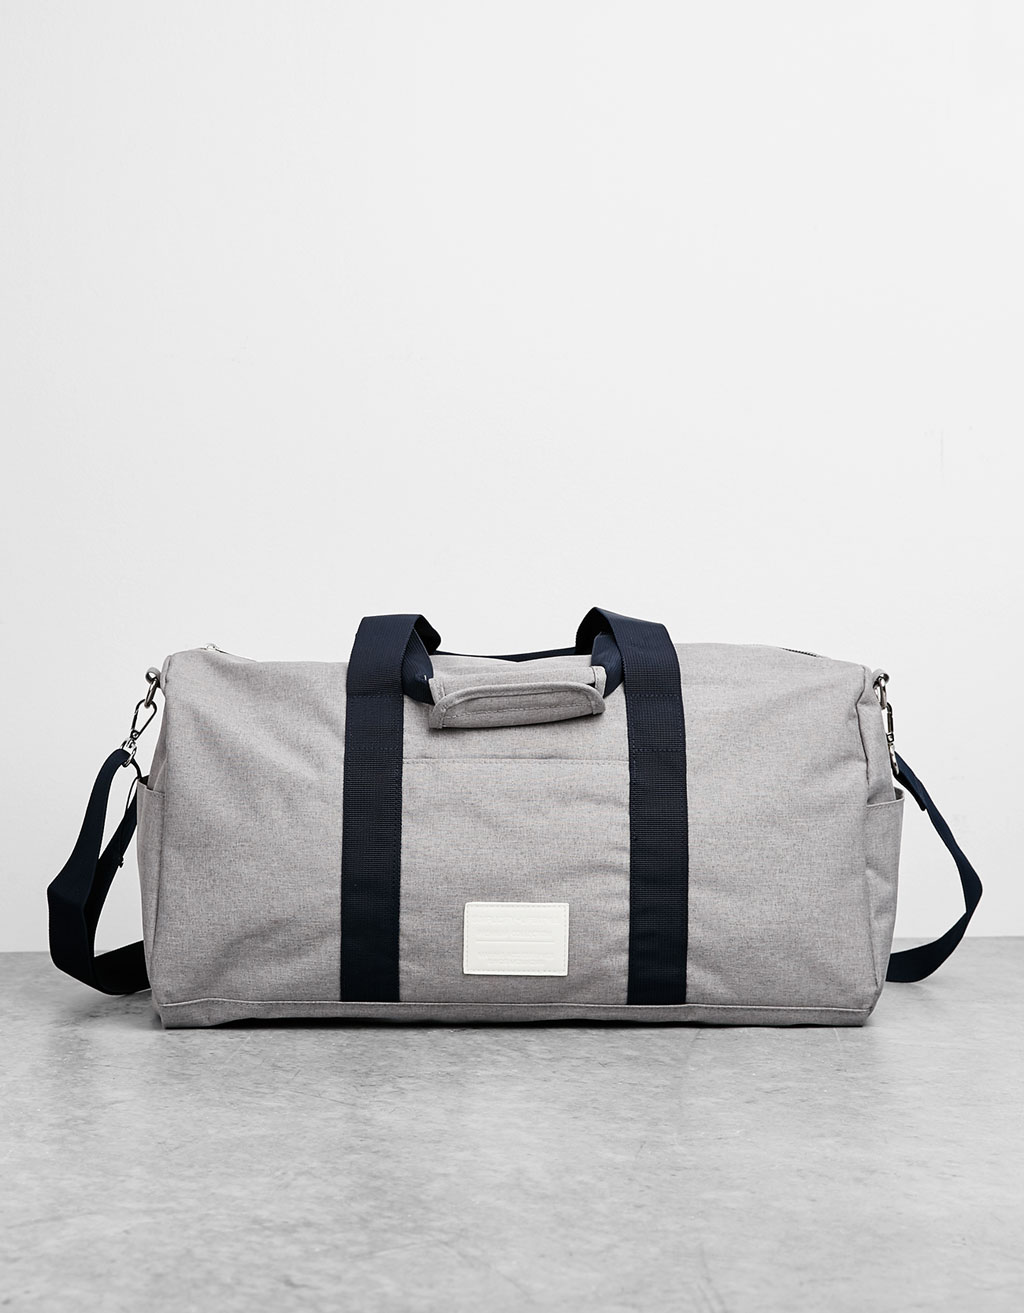 Weekend bag with contrasting straps